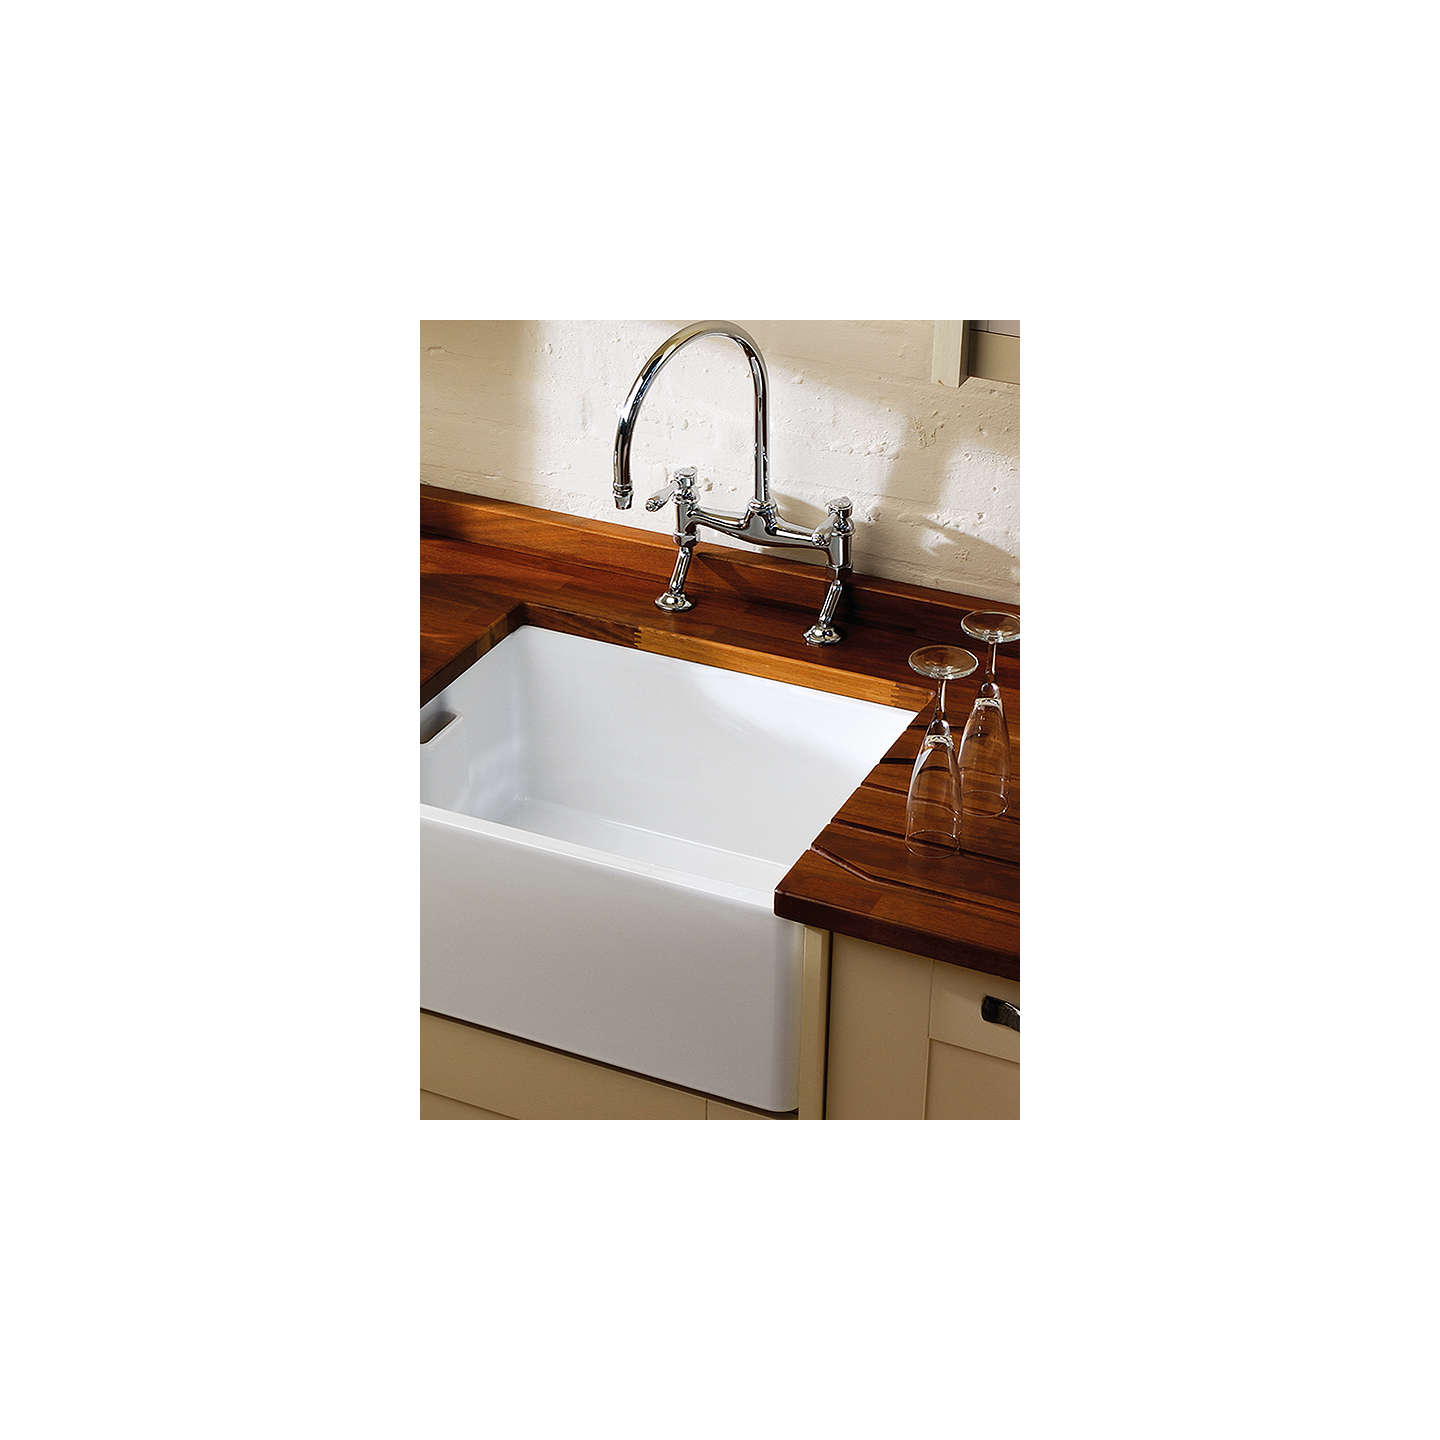 Clearwater Vintage Belfast Single Bowl Ceramic Kitchen Sink, White ...